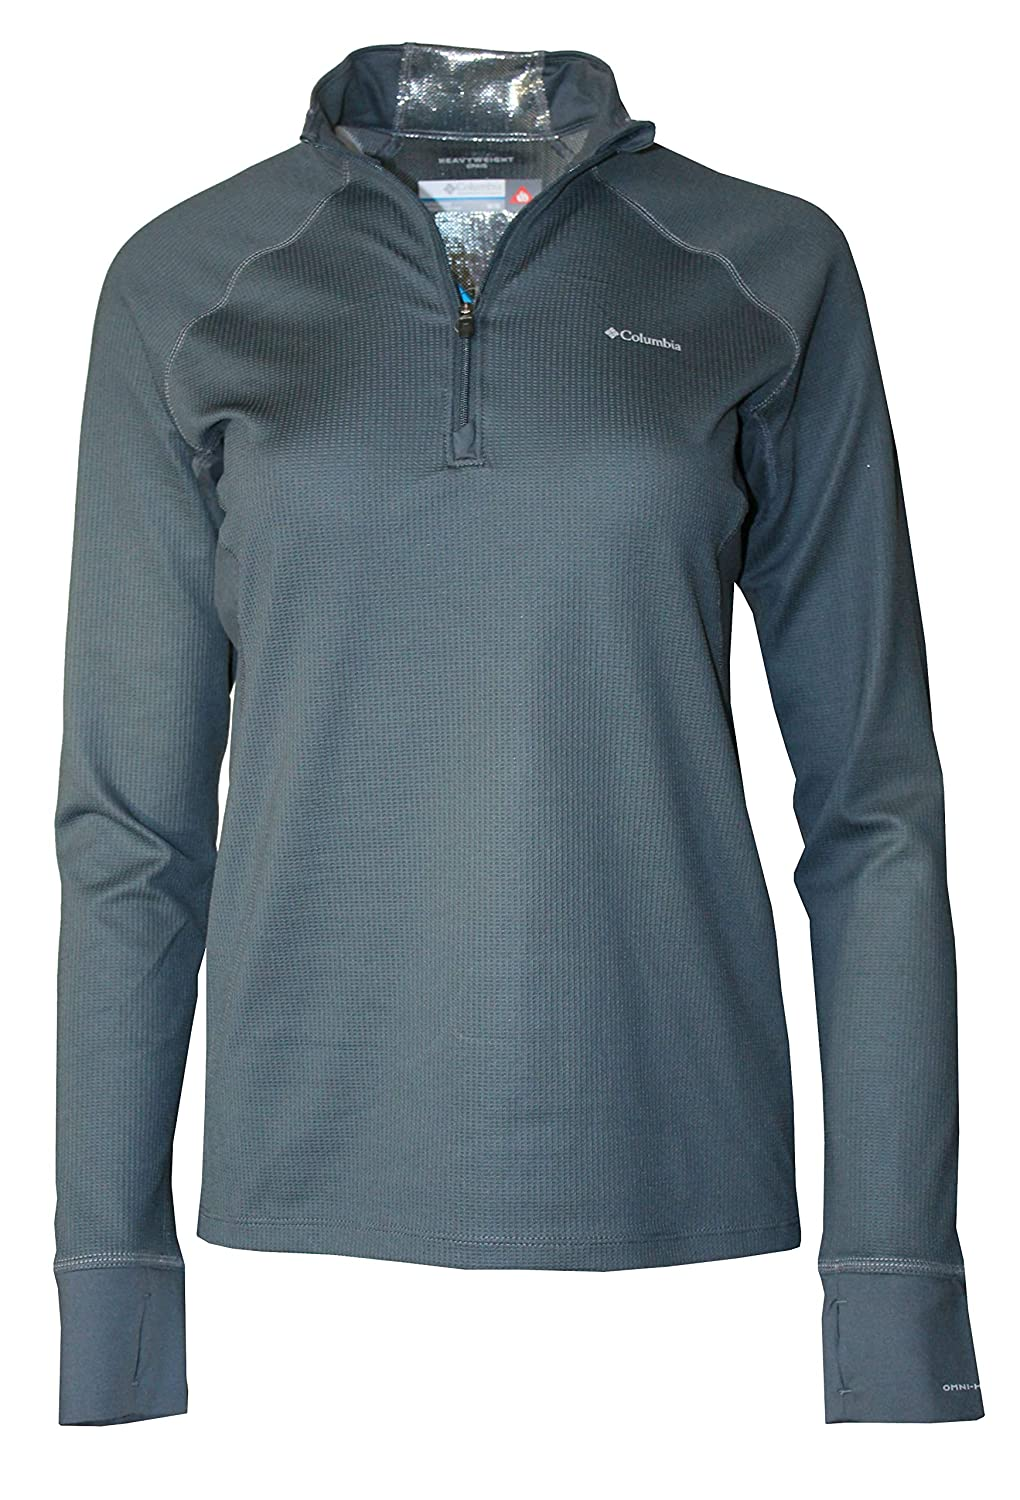 Columbia Womens Heavyweight Half Zip Baselayer Omni Heat Top